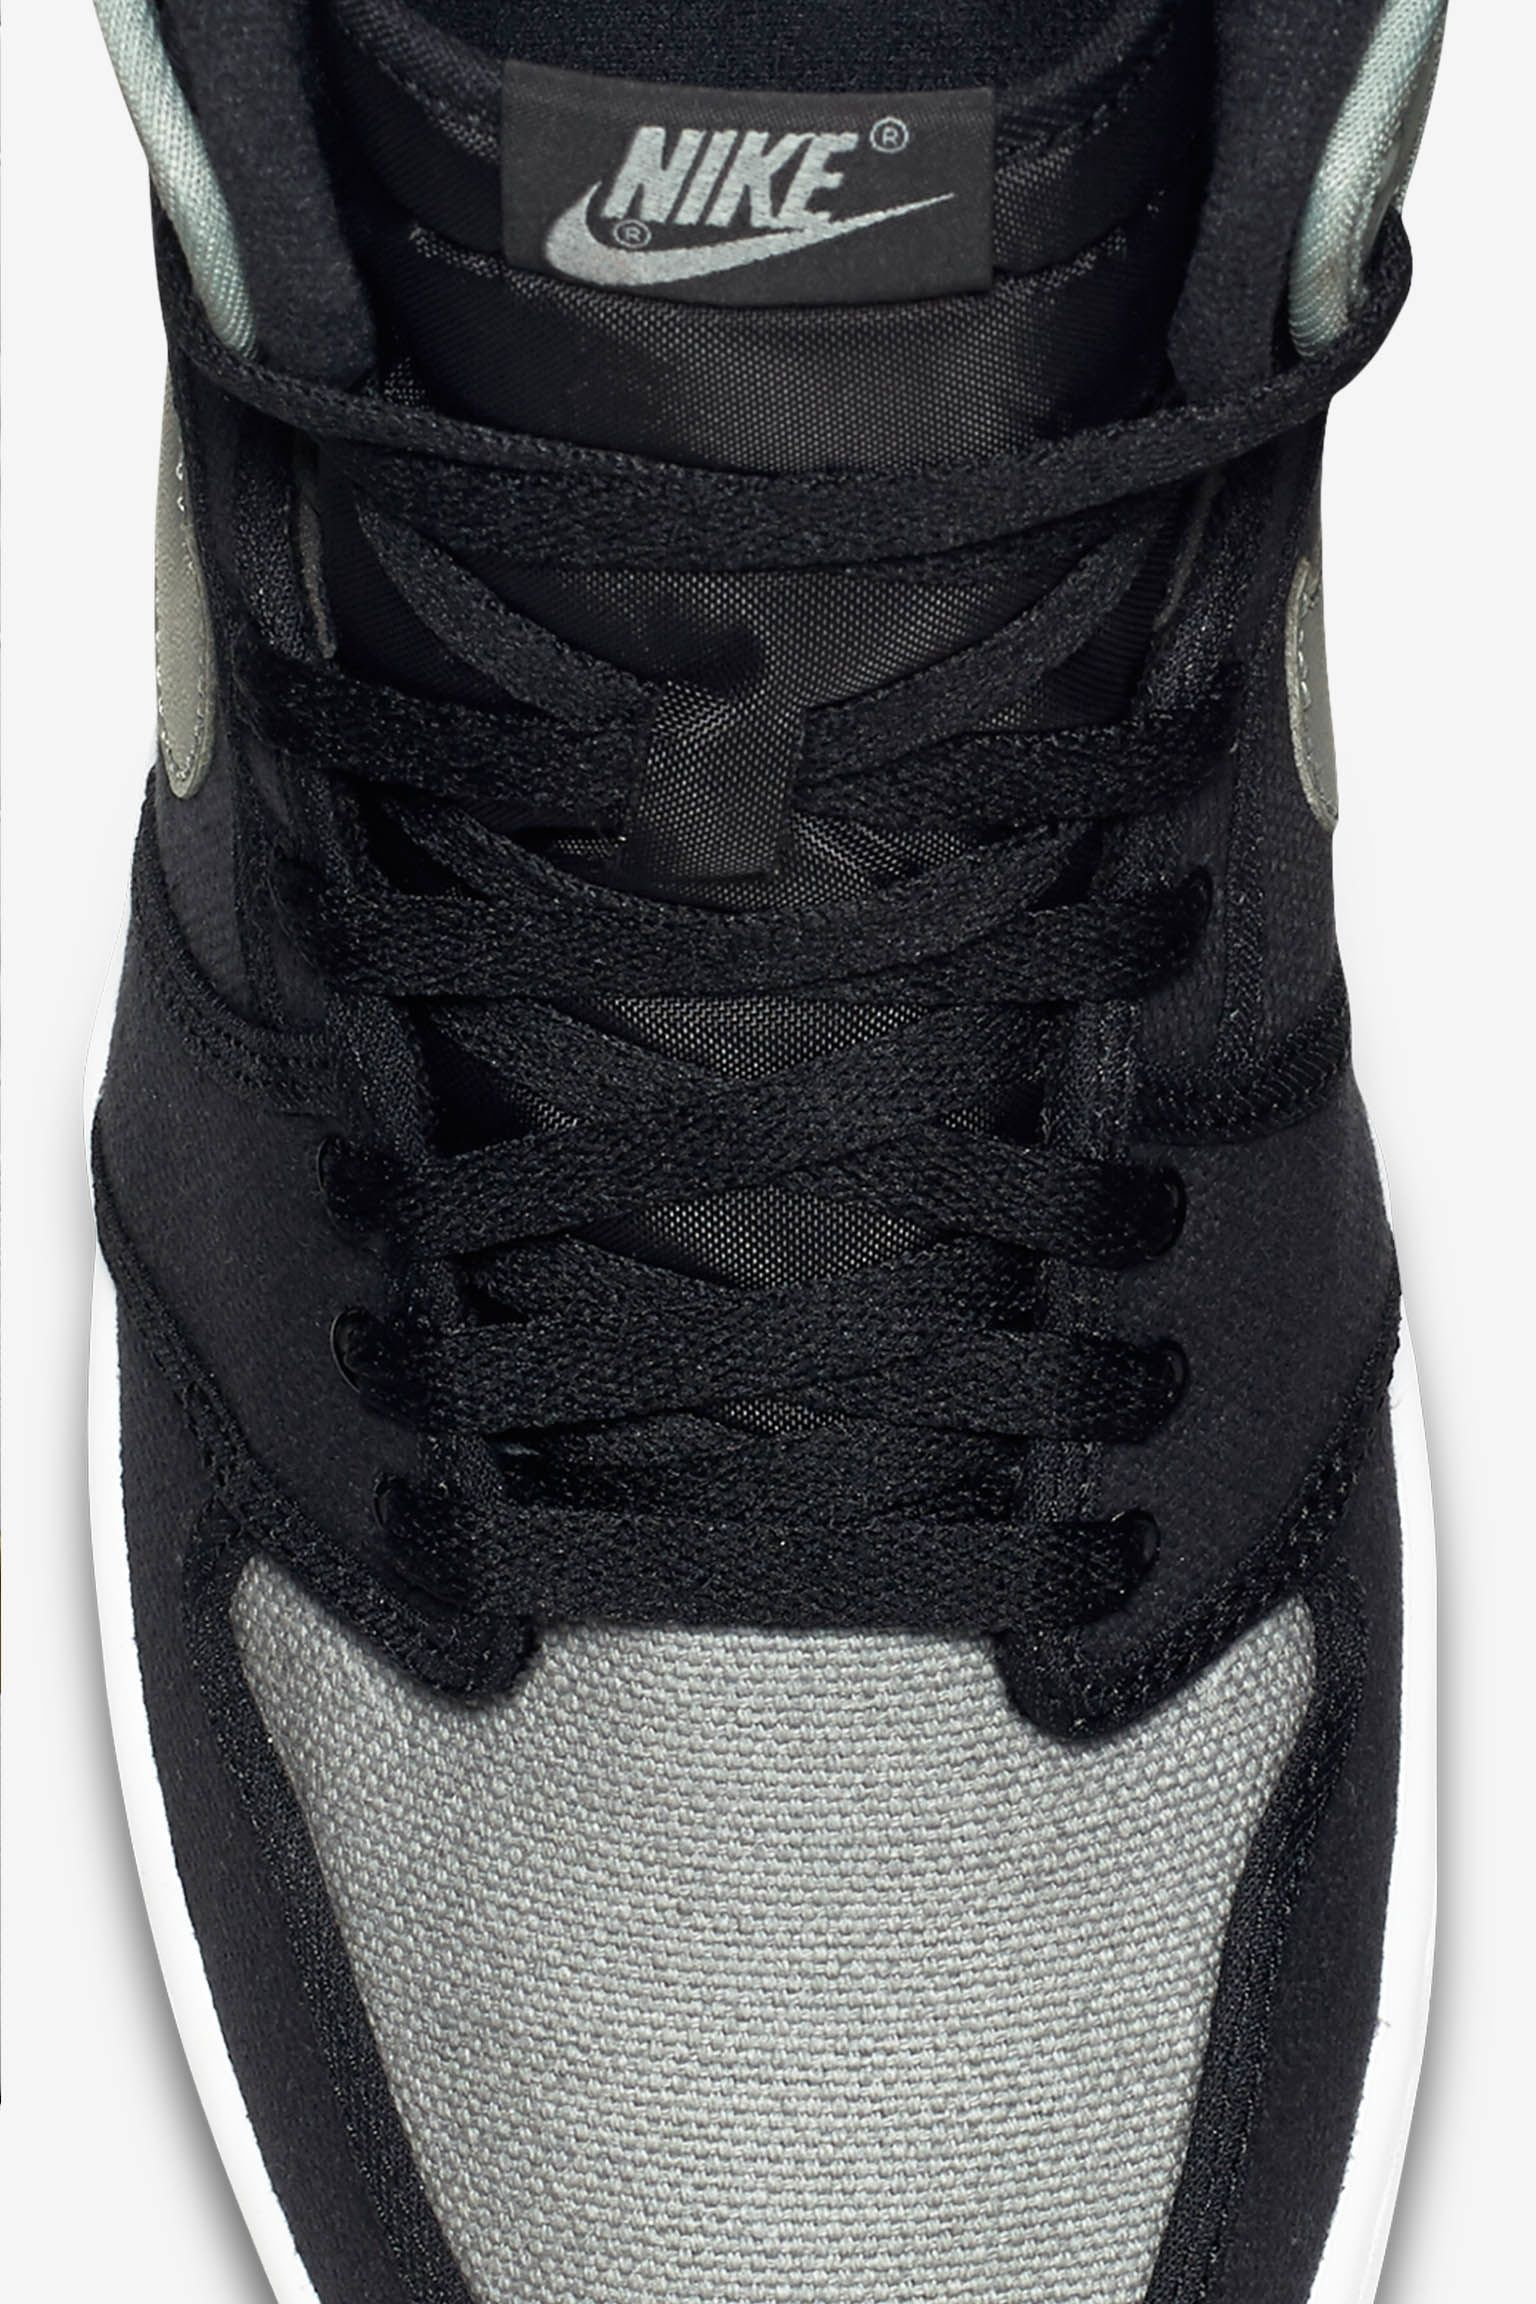 Air Jordan 1 KO 'Black & Shadow Grey' Release Date